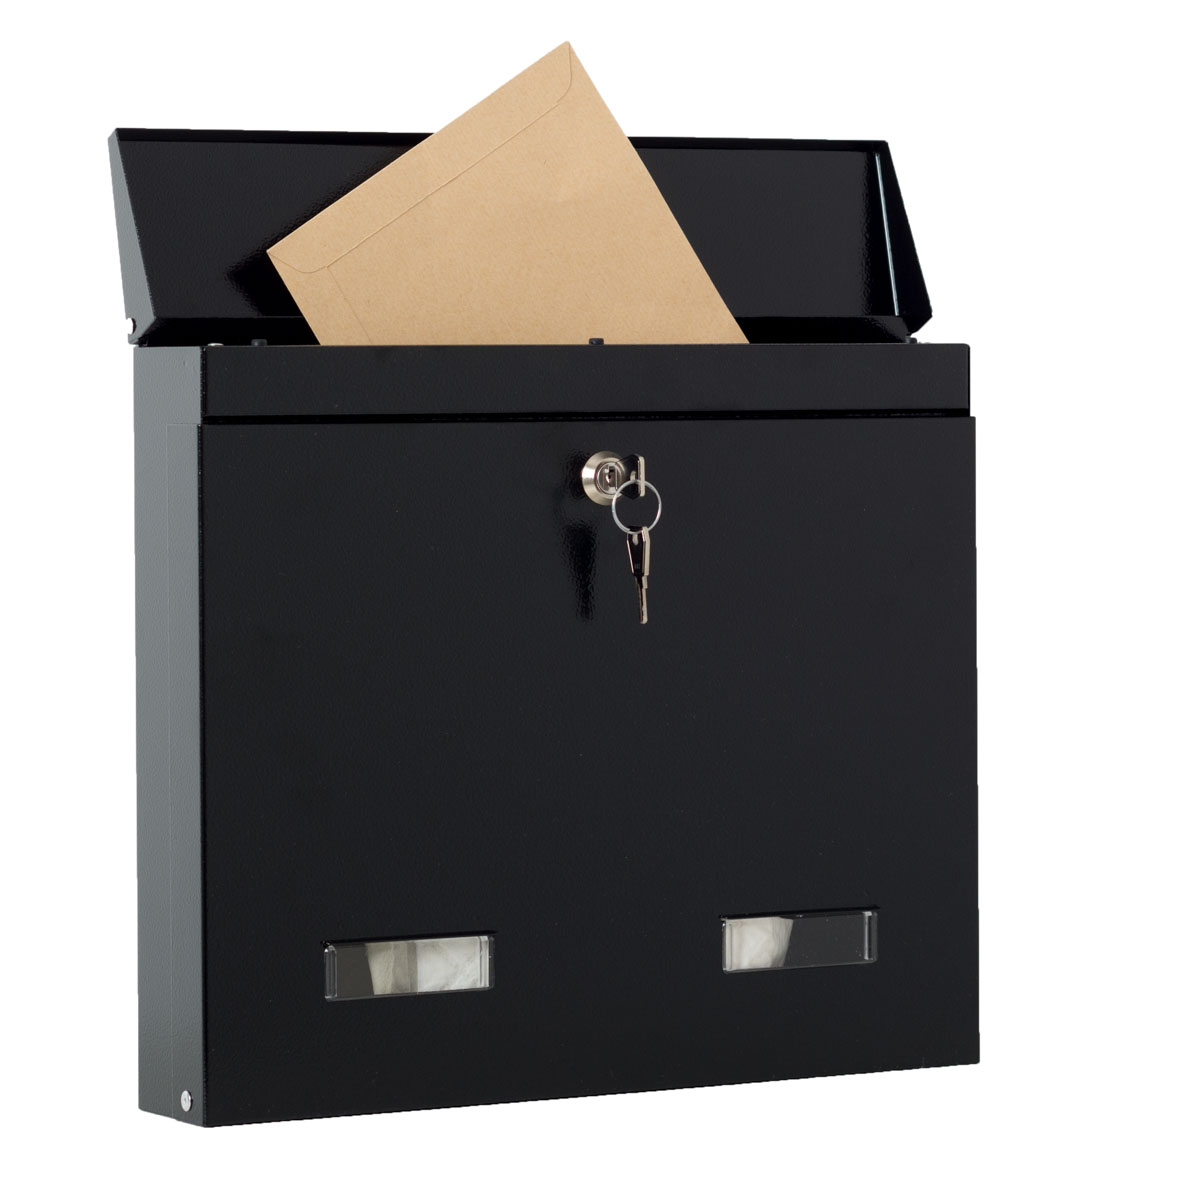 Letterbox Uk: Highly Weather Resistant-Powder